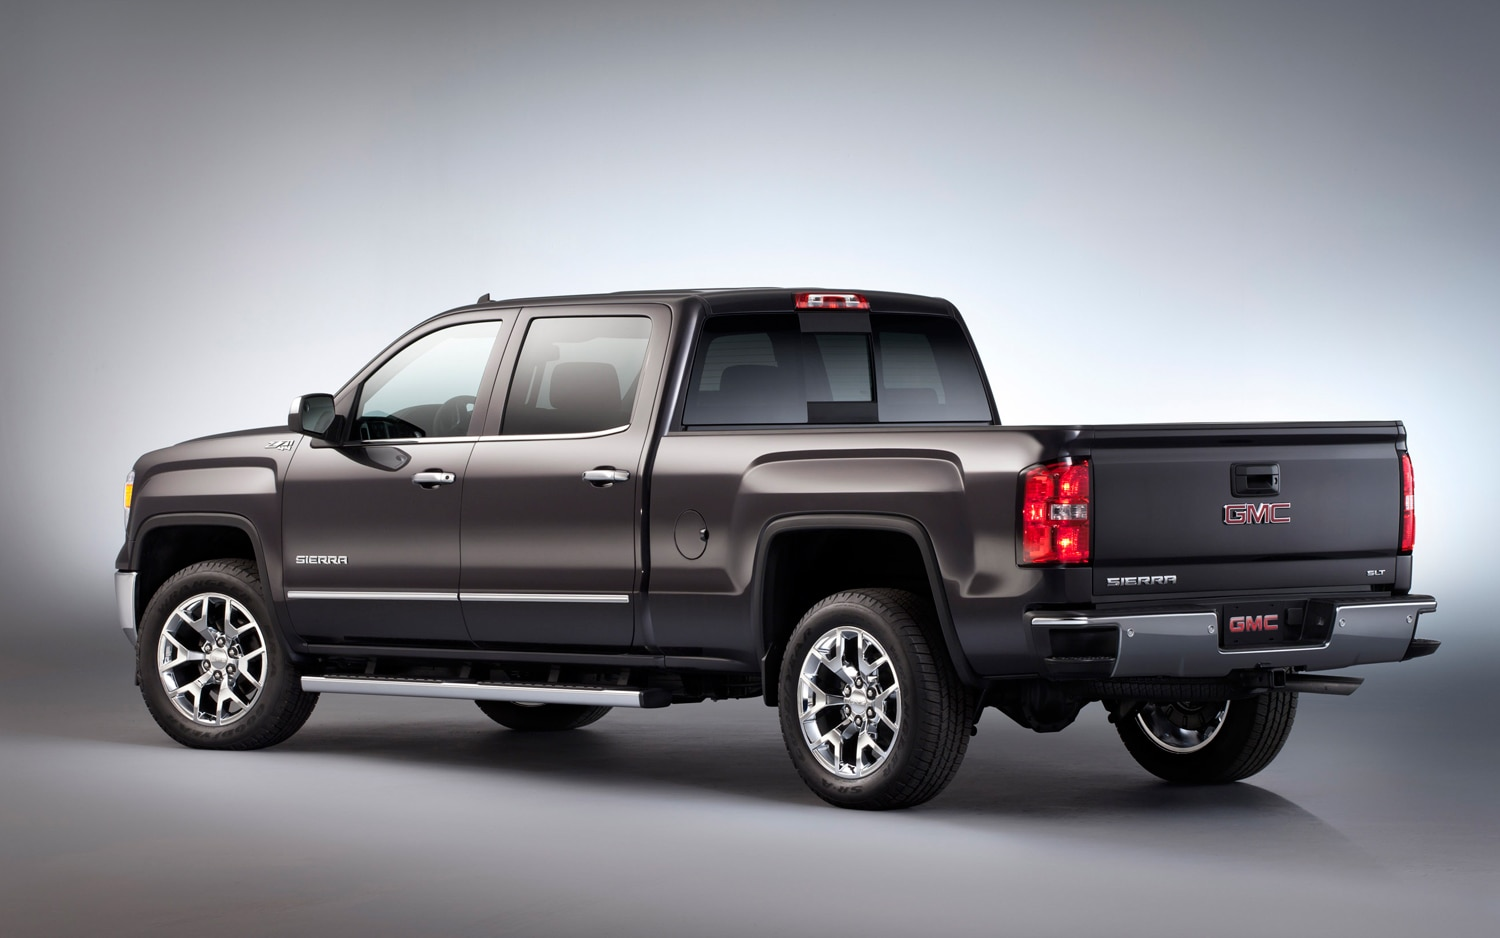 2014 GMC Sierra Rear View 2